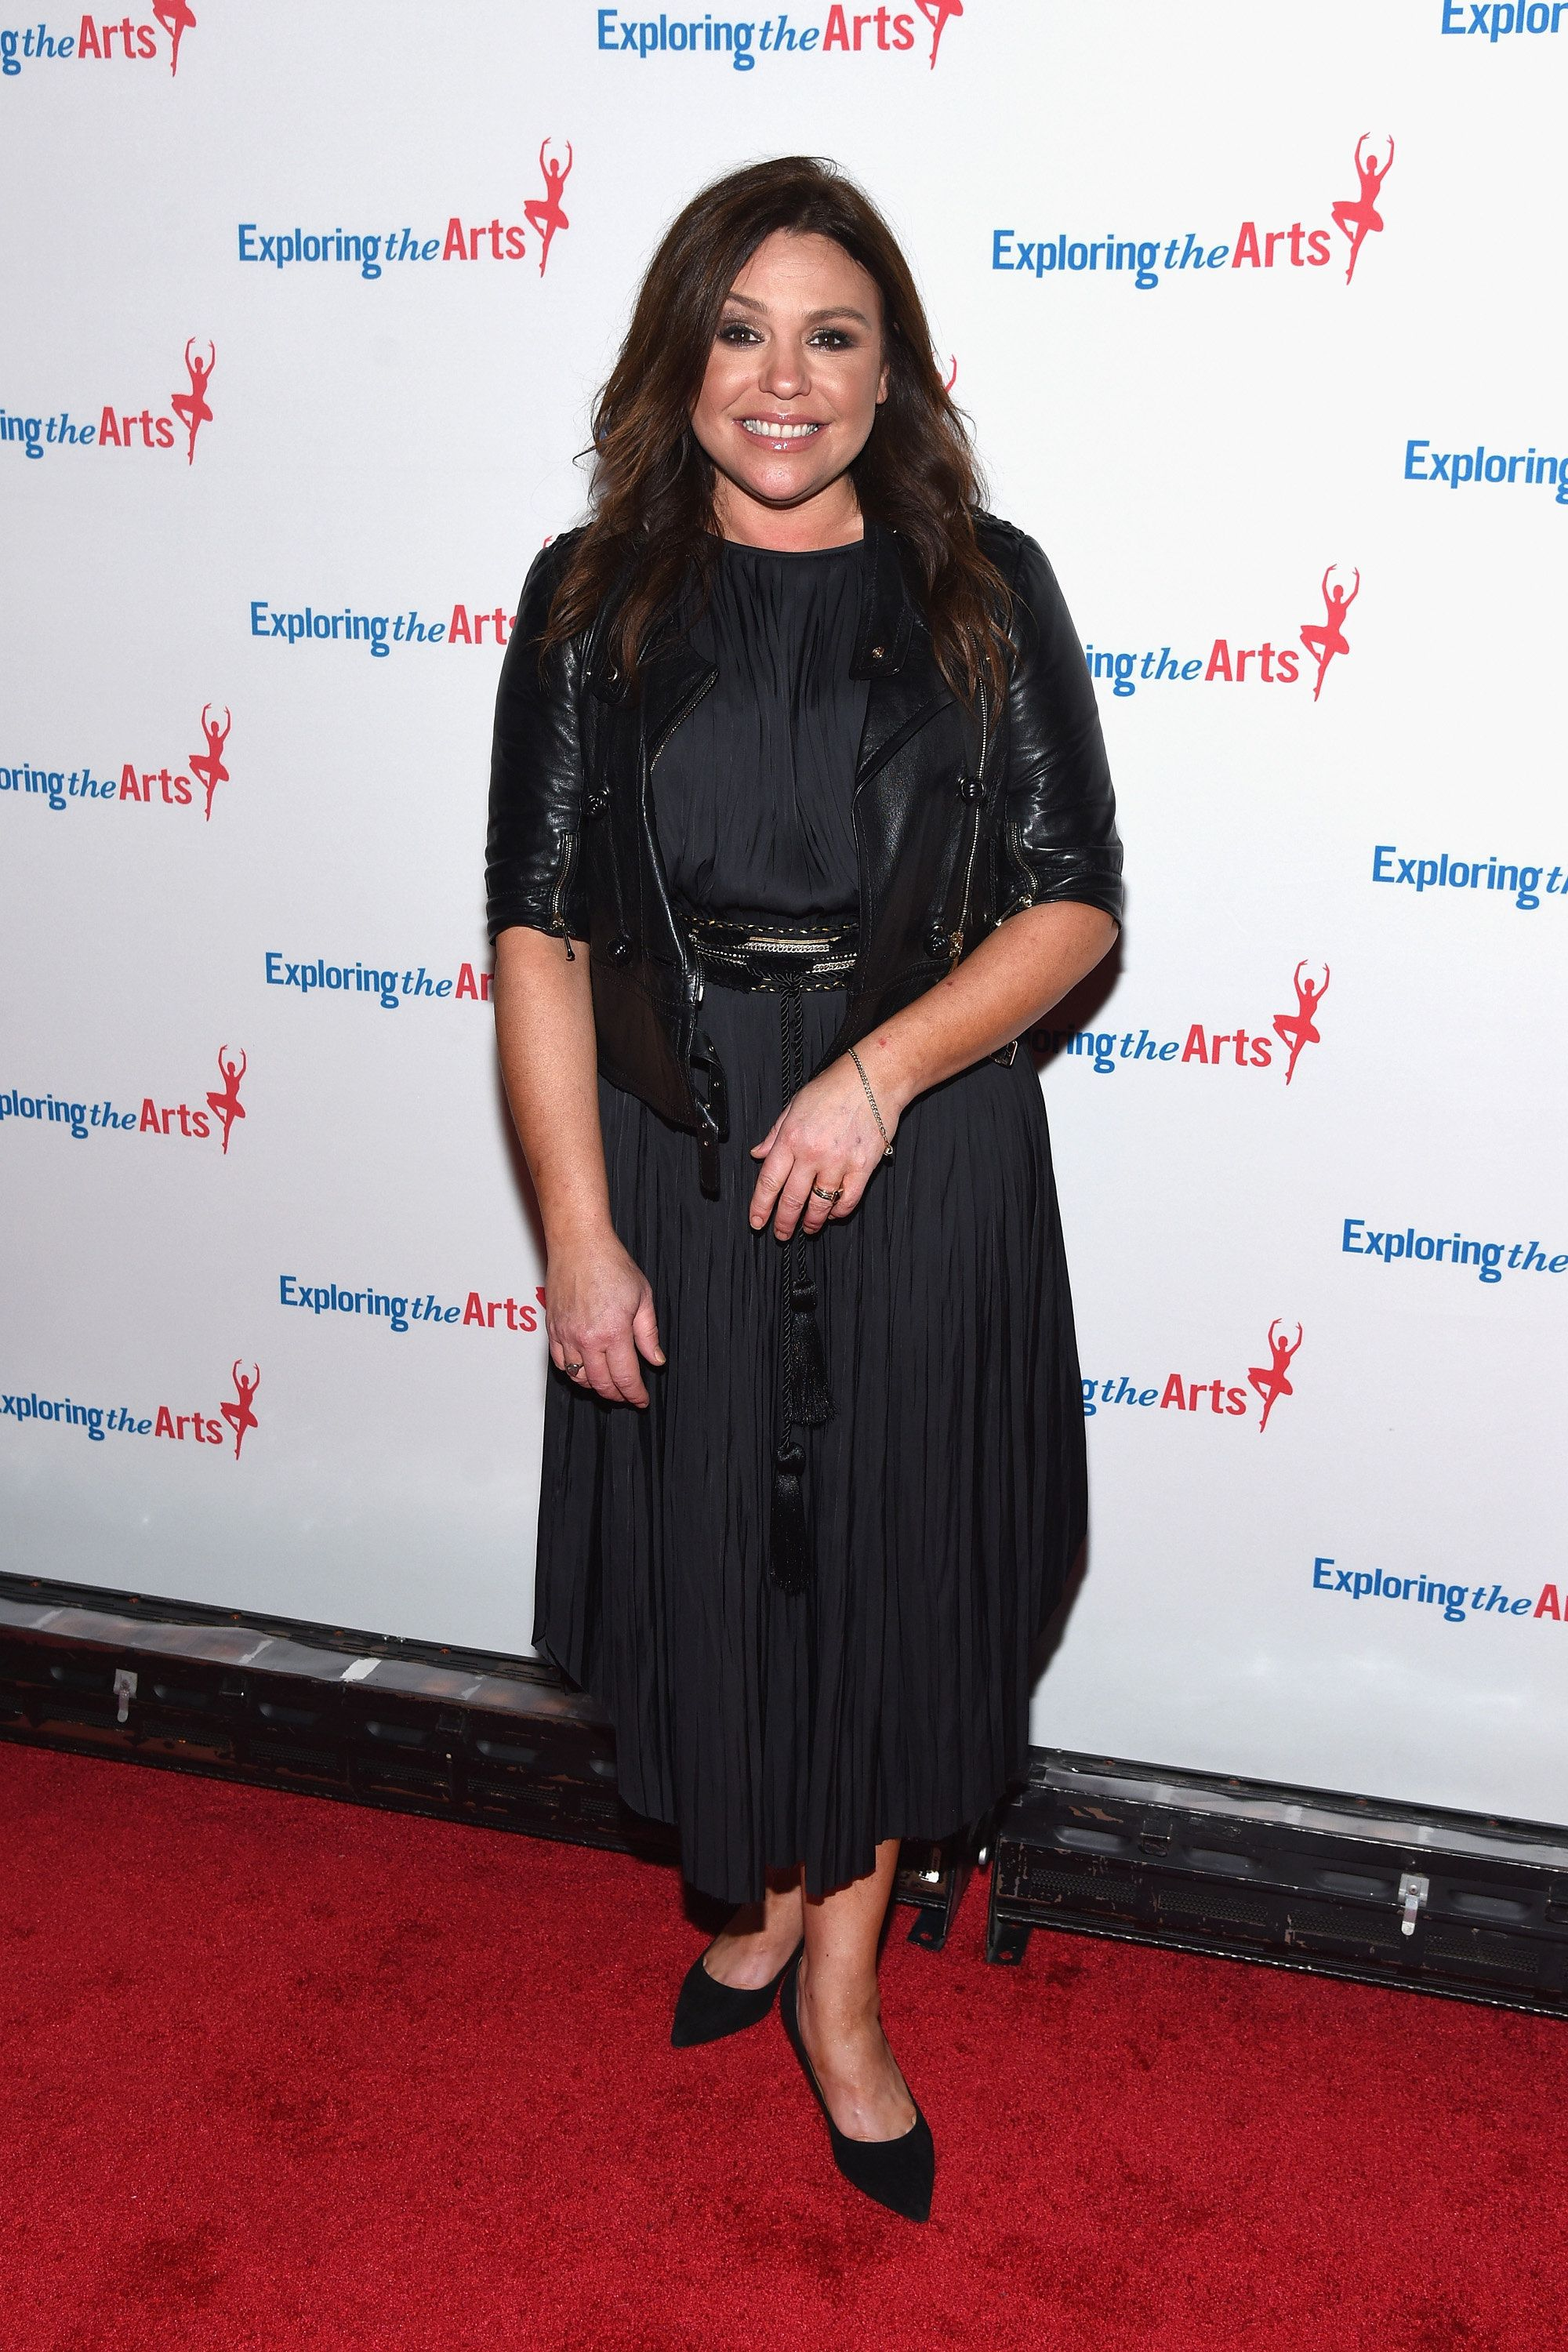 NEW YORK, NY - SEPTEMBER 28:  Rachael Ray attends the 9th Annual Exploring The Arts Gala founded by Tony Bennett and his wife Susan Benedetto at Cipriani 42nd Street on September 28, 2015 in New York City.  (Photo by Dave Kotinsky/Getty Images 8th Annual Exploring The Arts Gala)